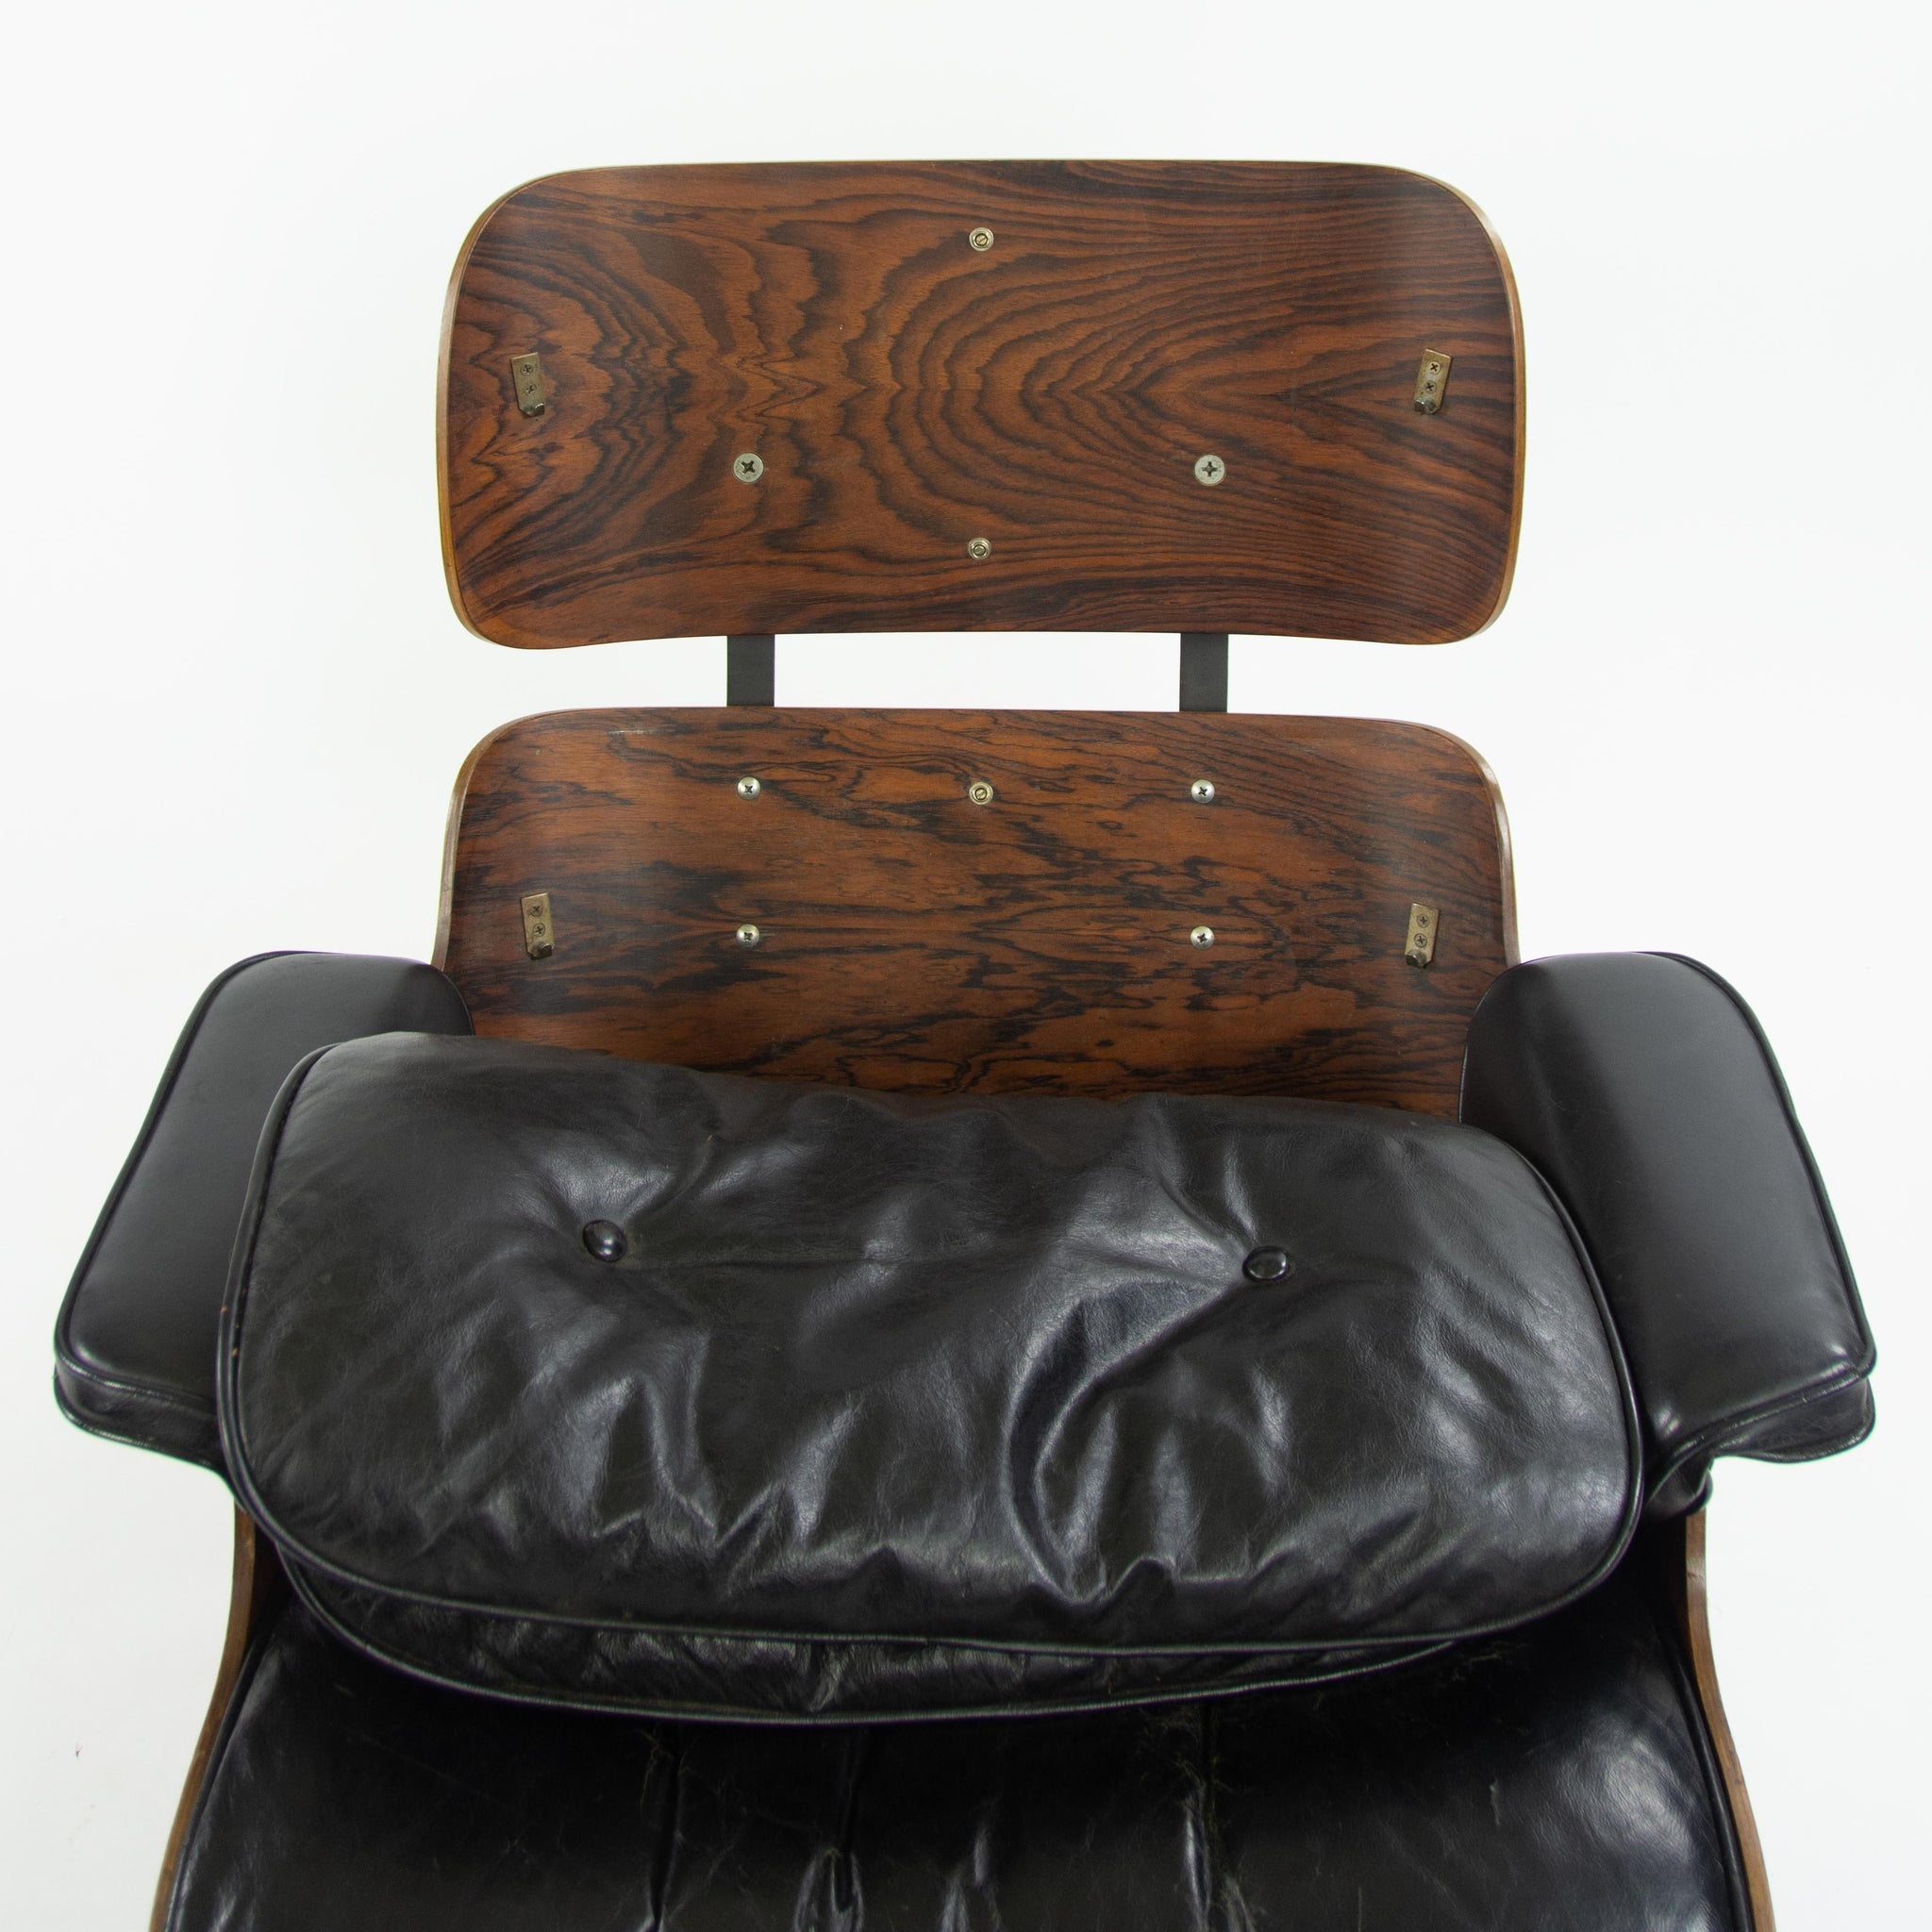 1956 Holy Grail Herman Miller Eames Lounge Chair w Swivel Ottoman Boots 670 671